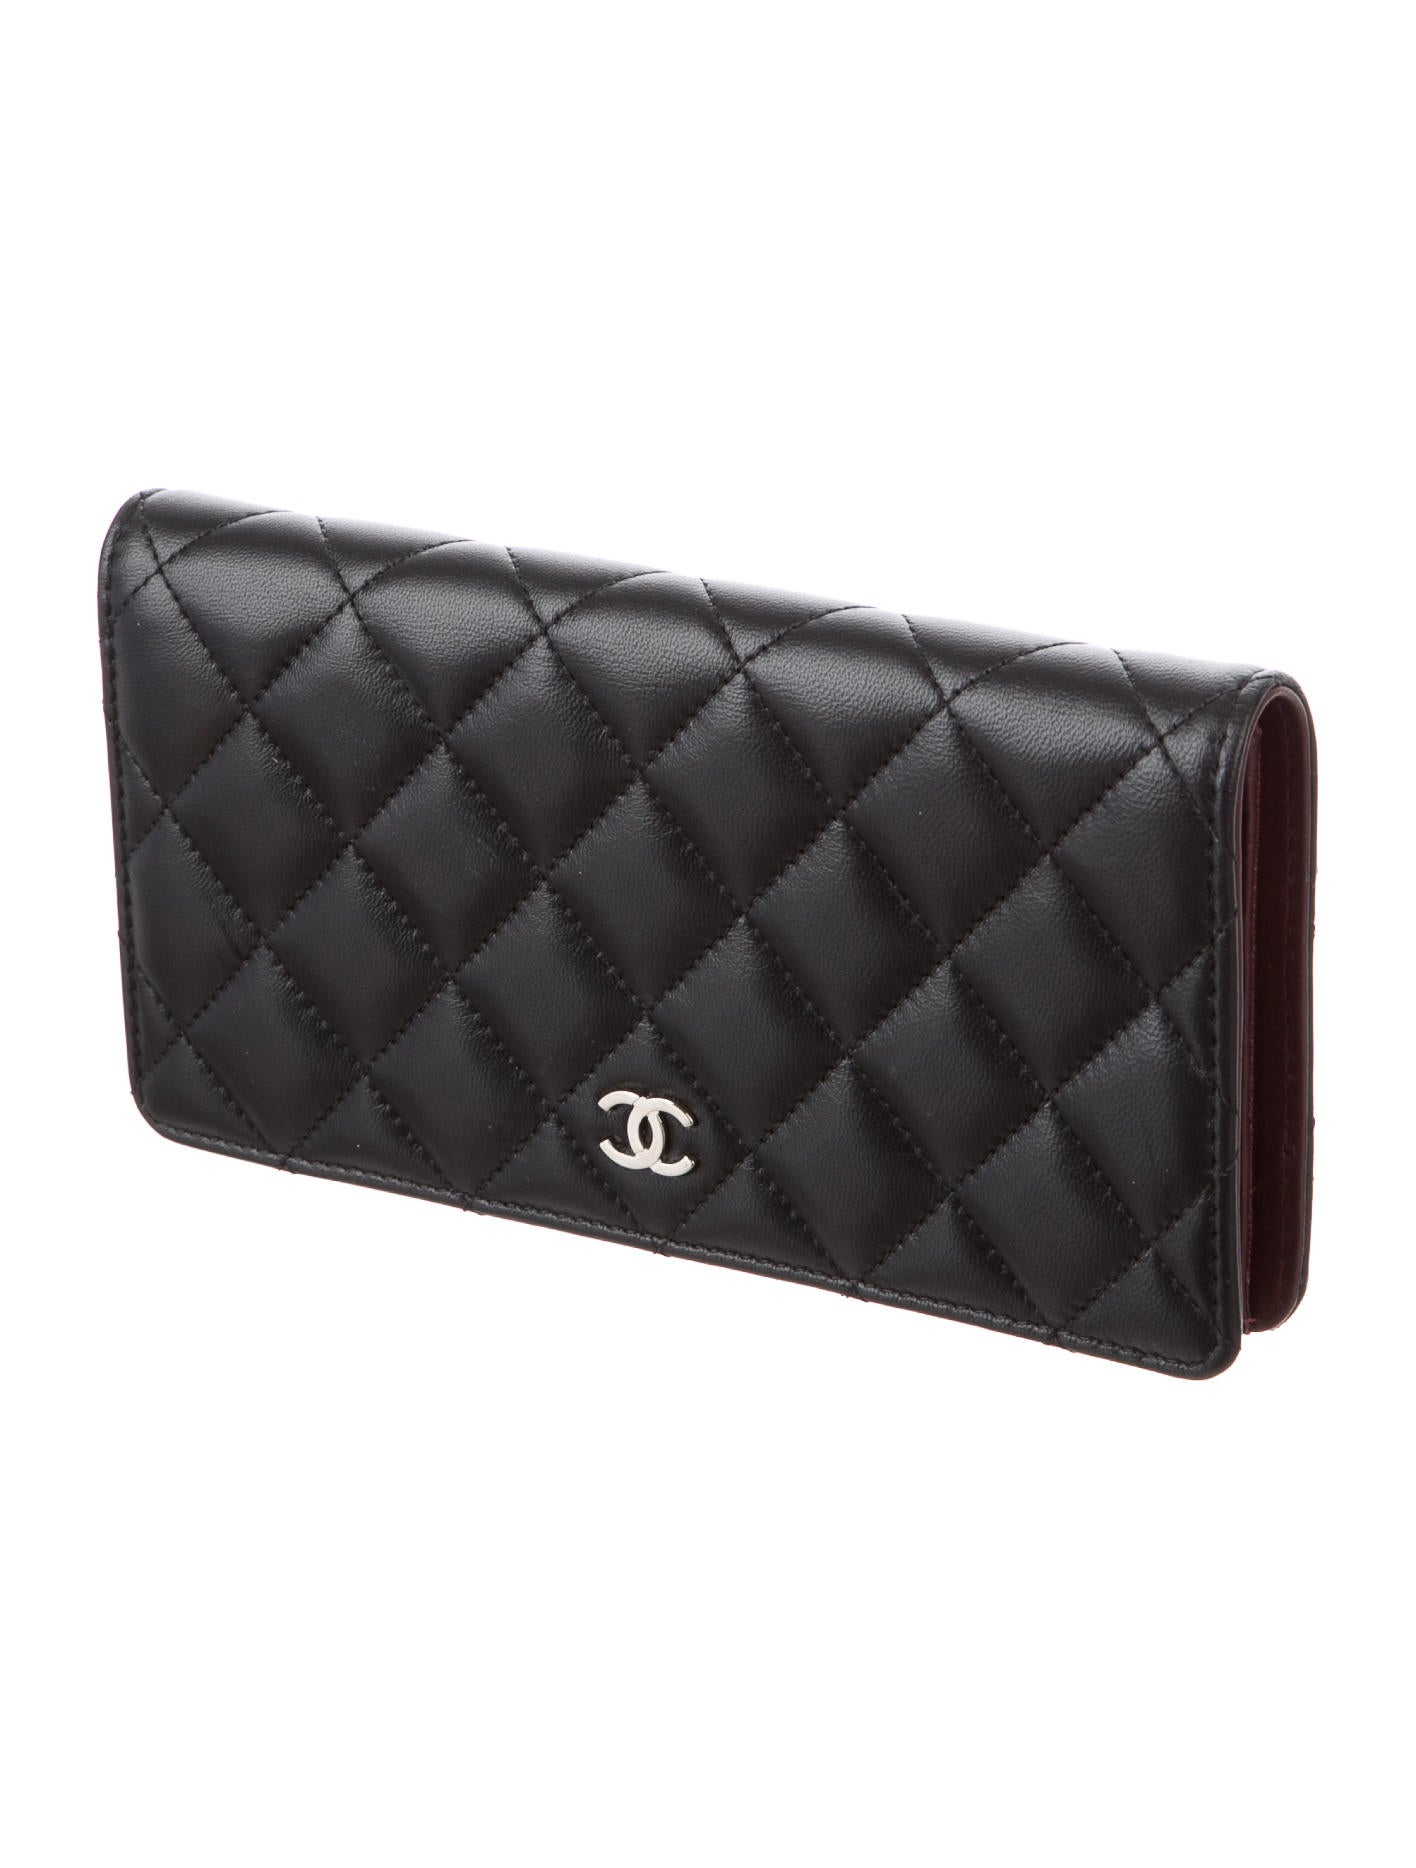 1d88e350d2c72d Chanel Quilted Yen Wallet - Accessories - CHA178428 | The RealReal